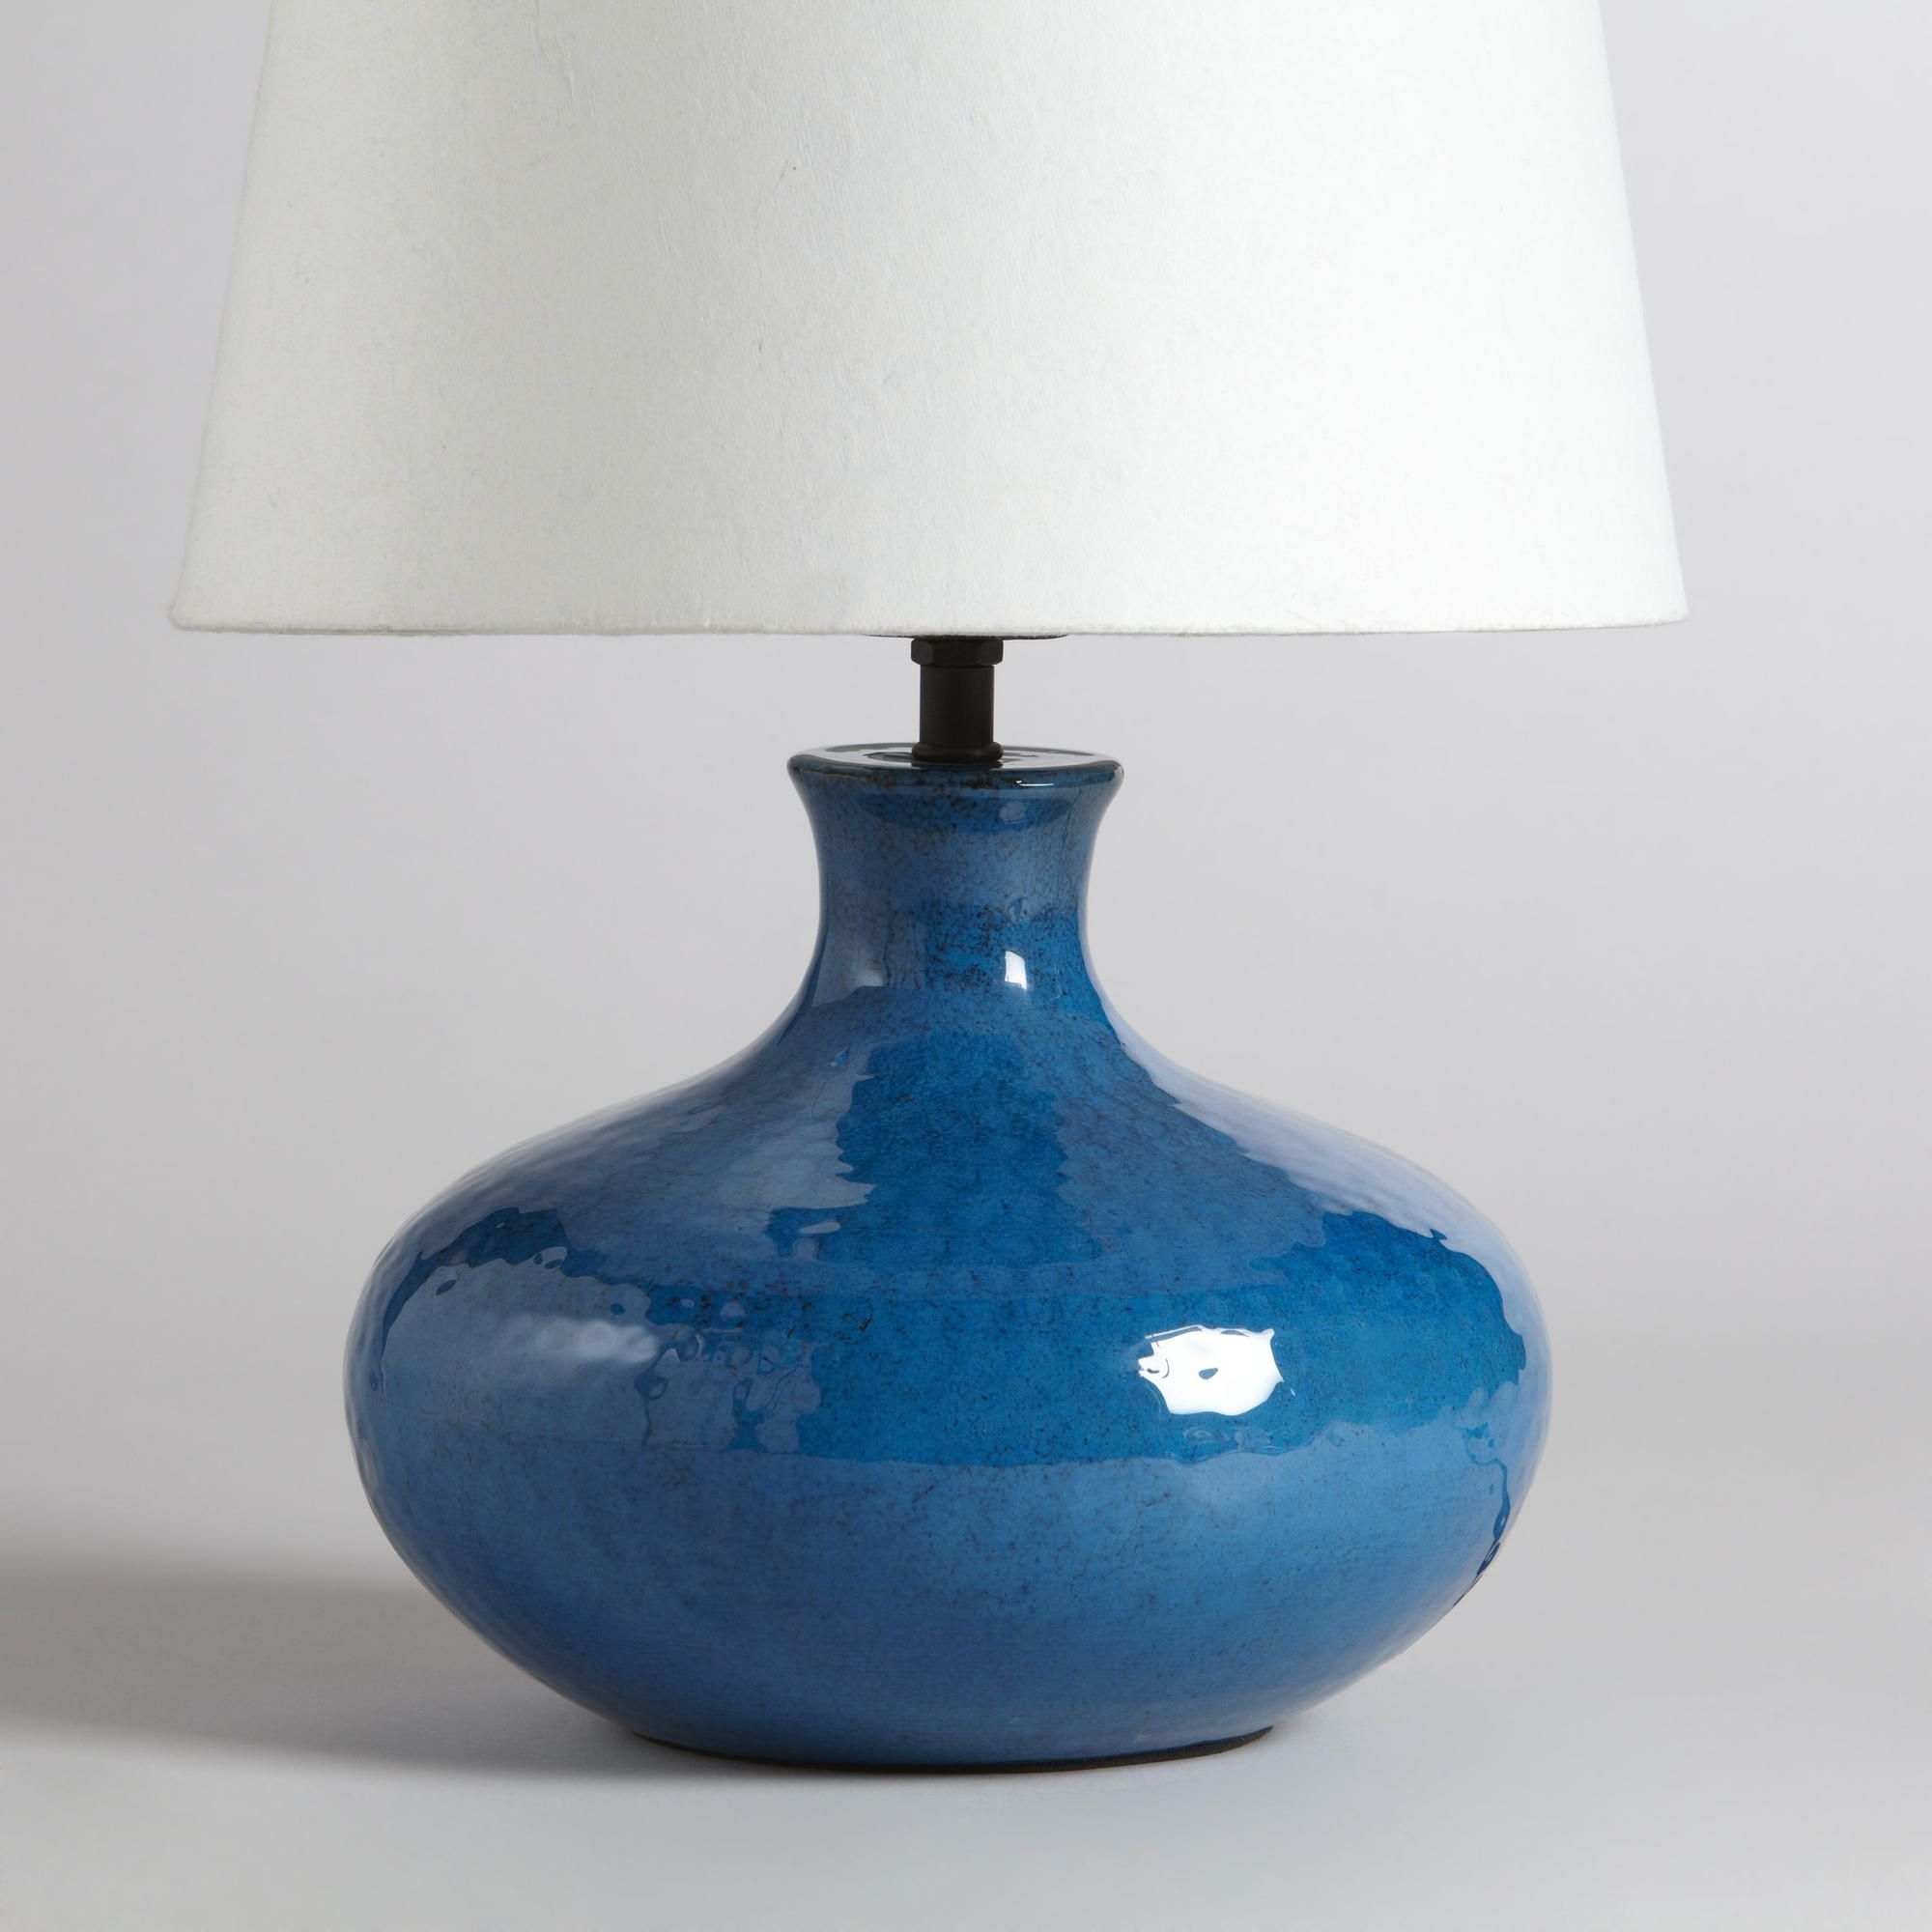 Blue potted accent lamp base world market interiors blue potted accent lamp base world market geotapseo Image collections